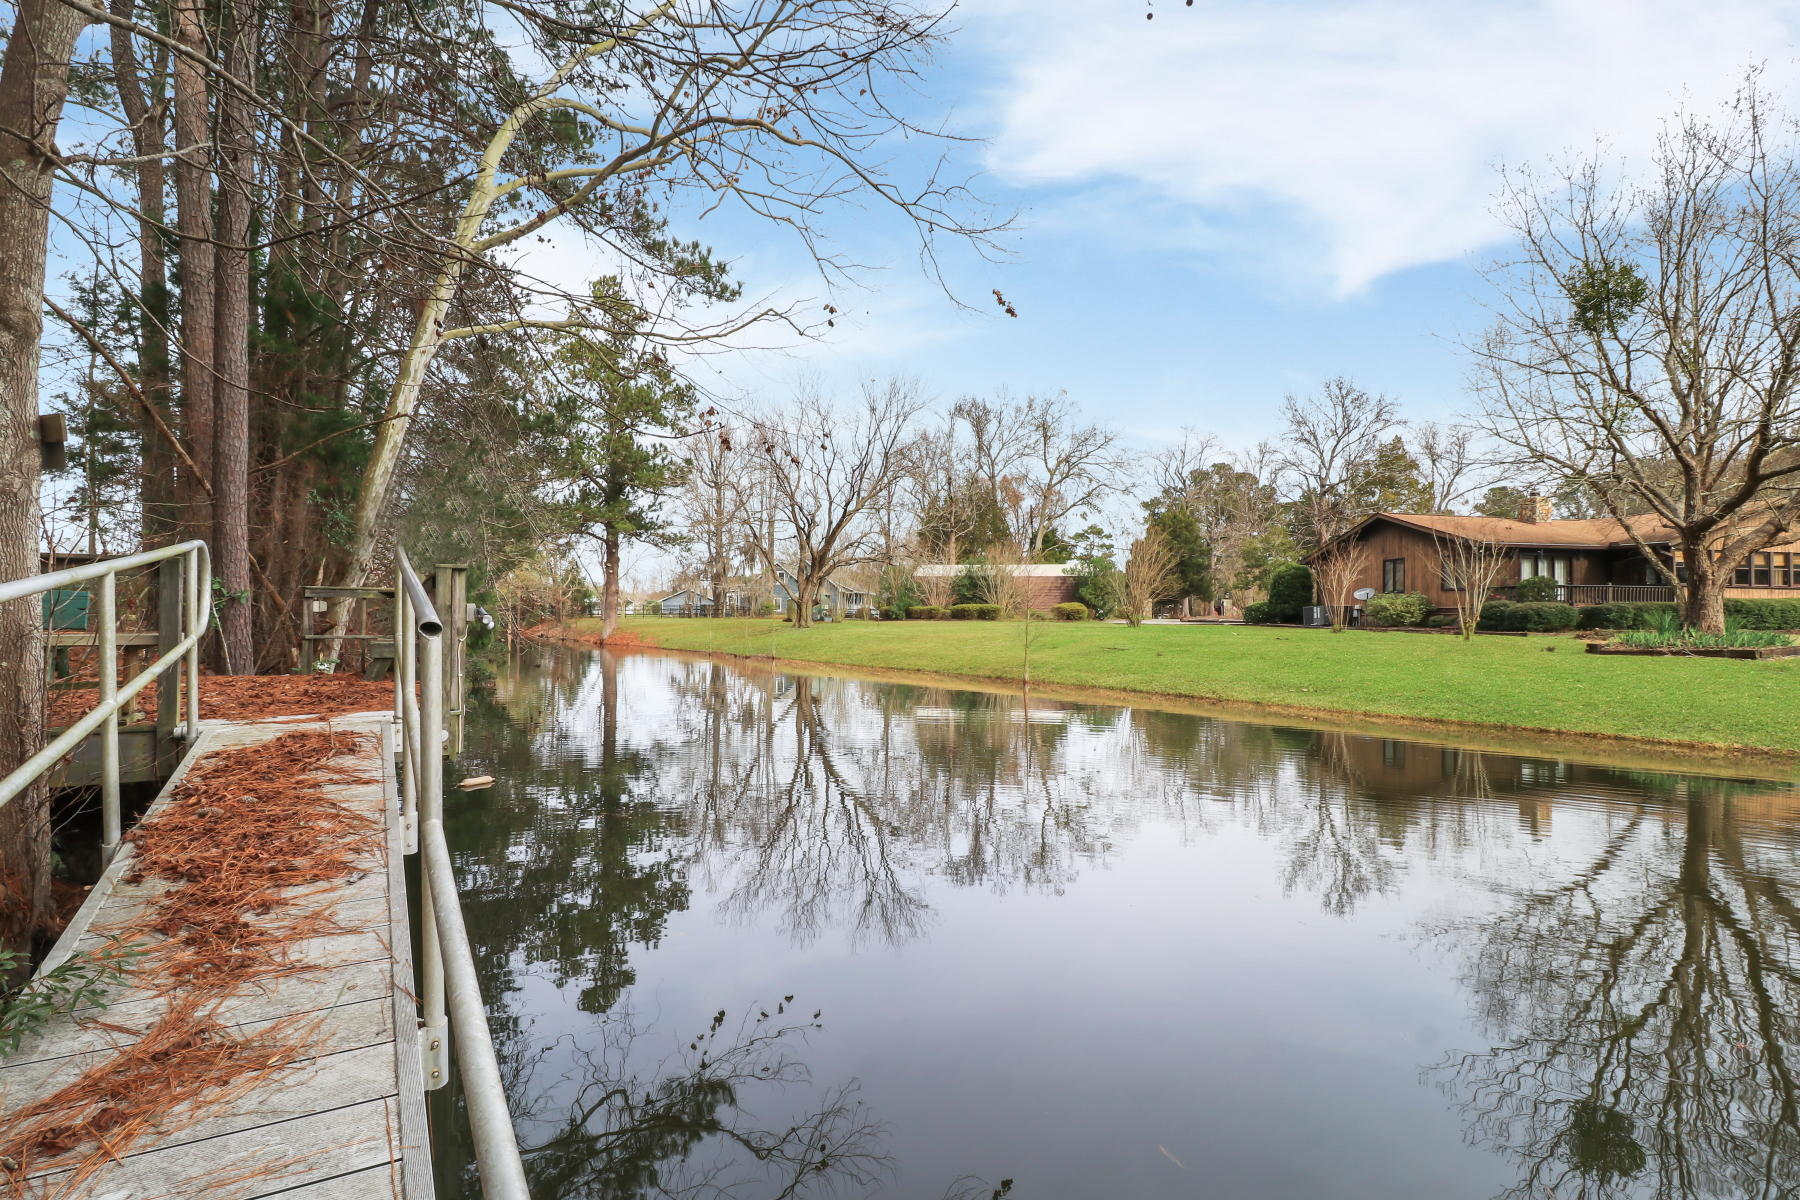 Plantation II Homes For Sale - 141 Meredith, Eutawville, SC - 1